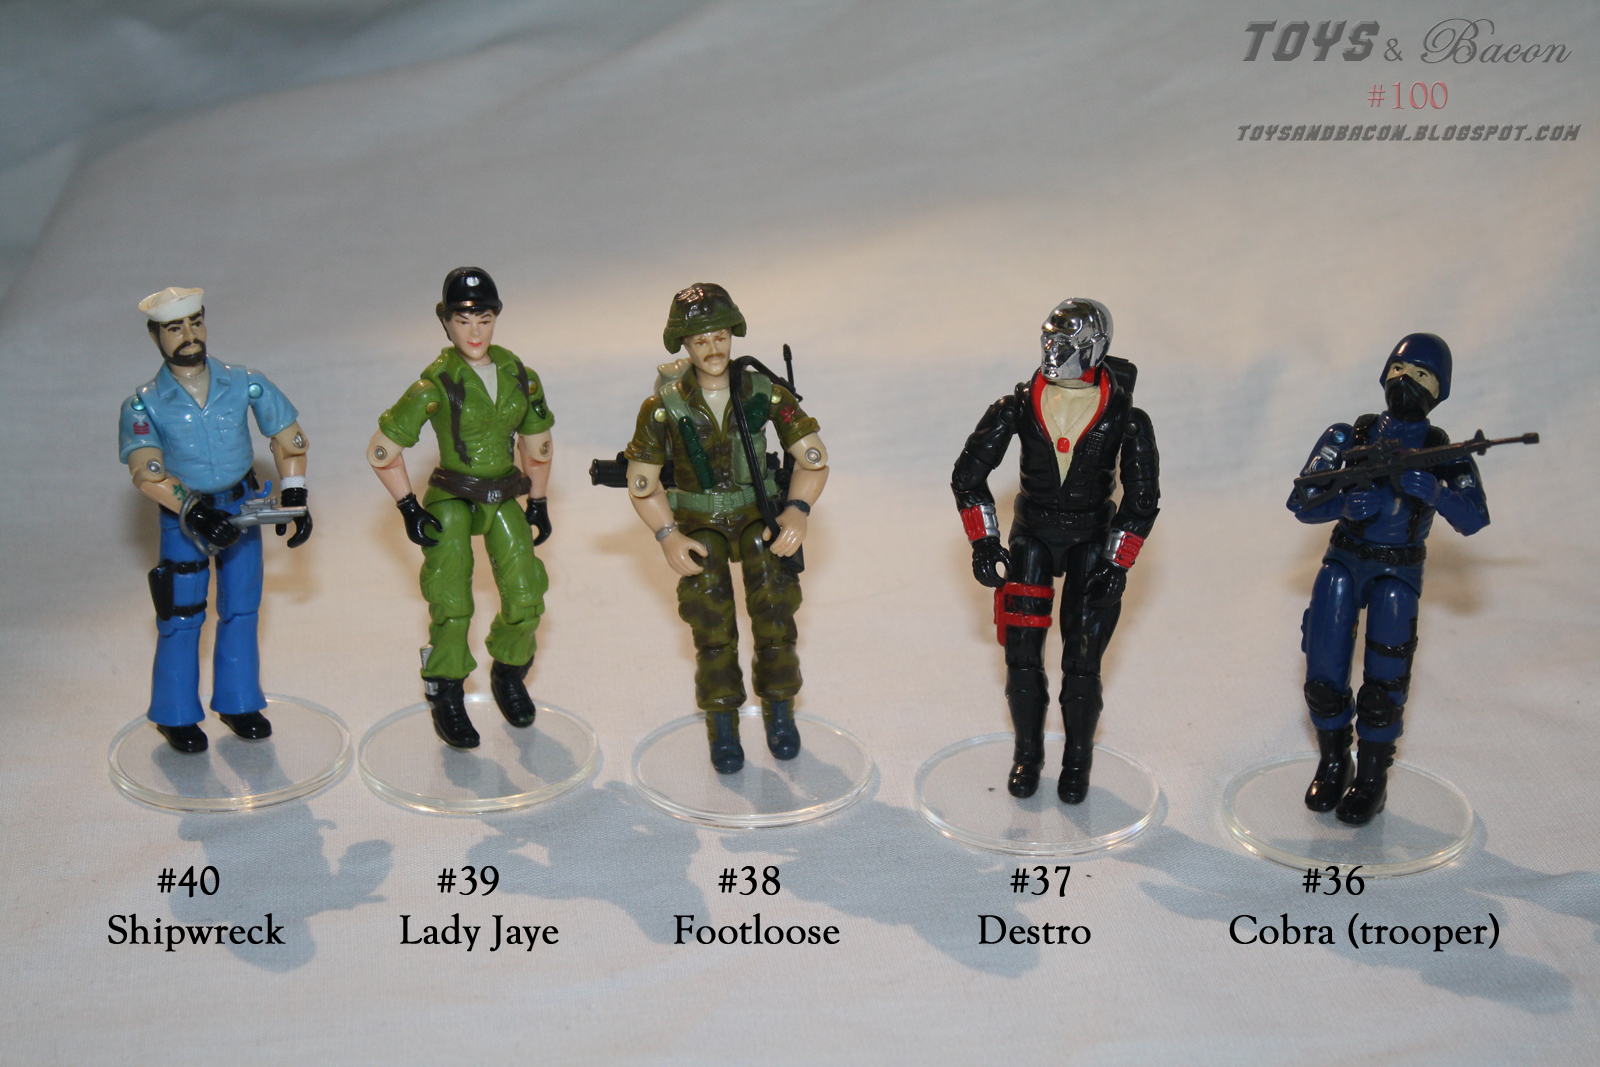 1988 gi joe hasbro bases stands